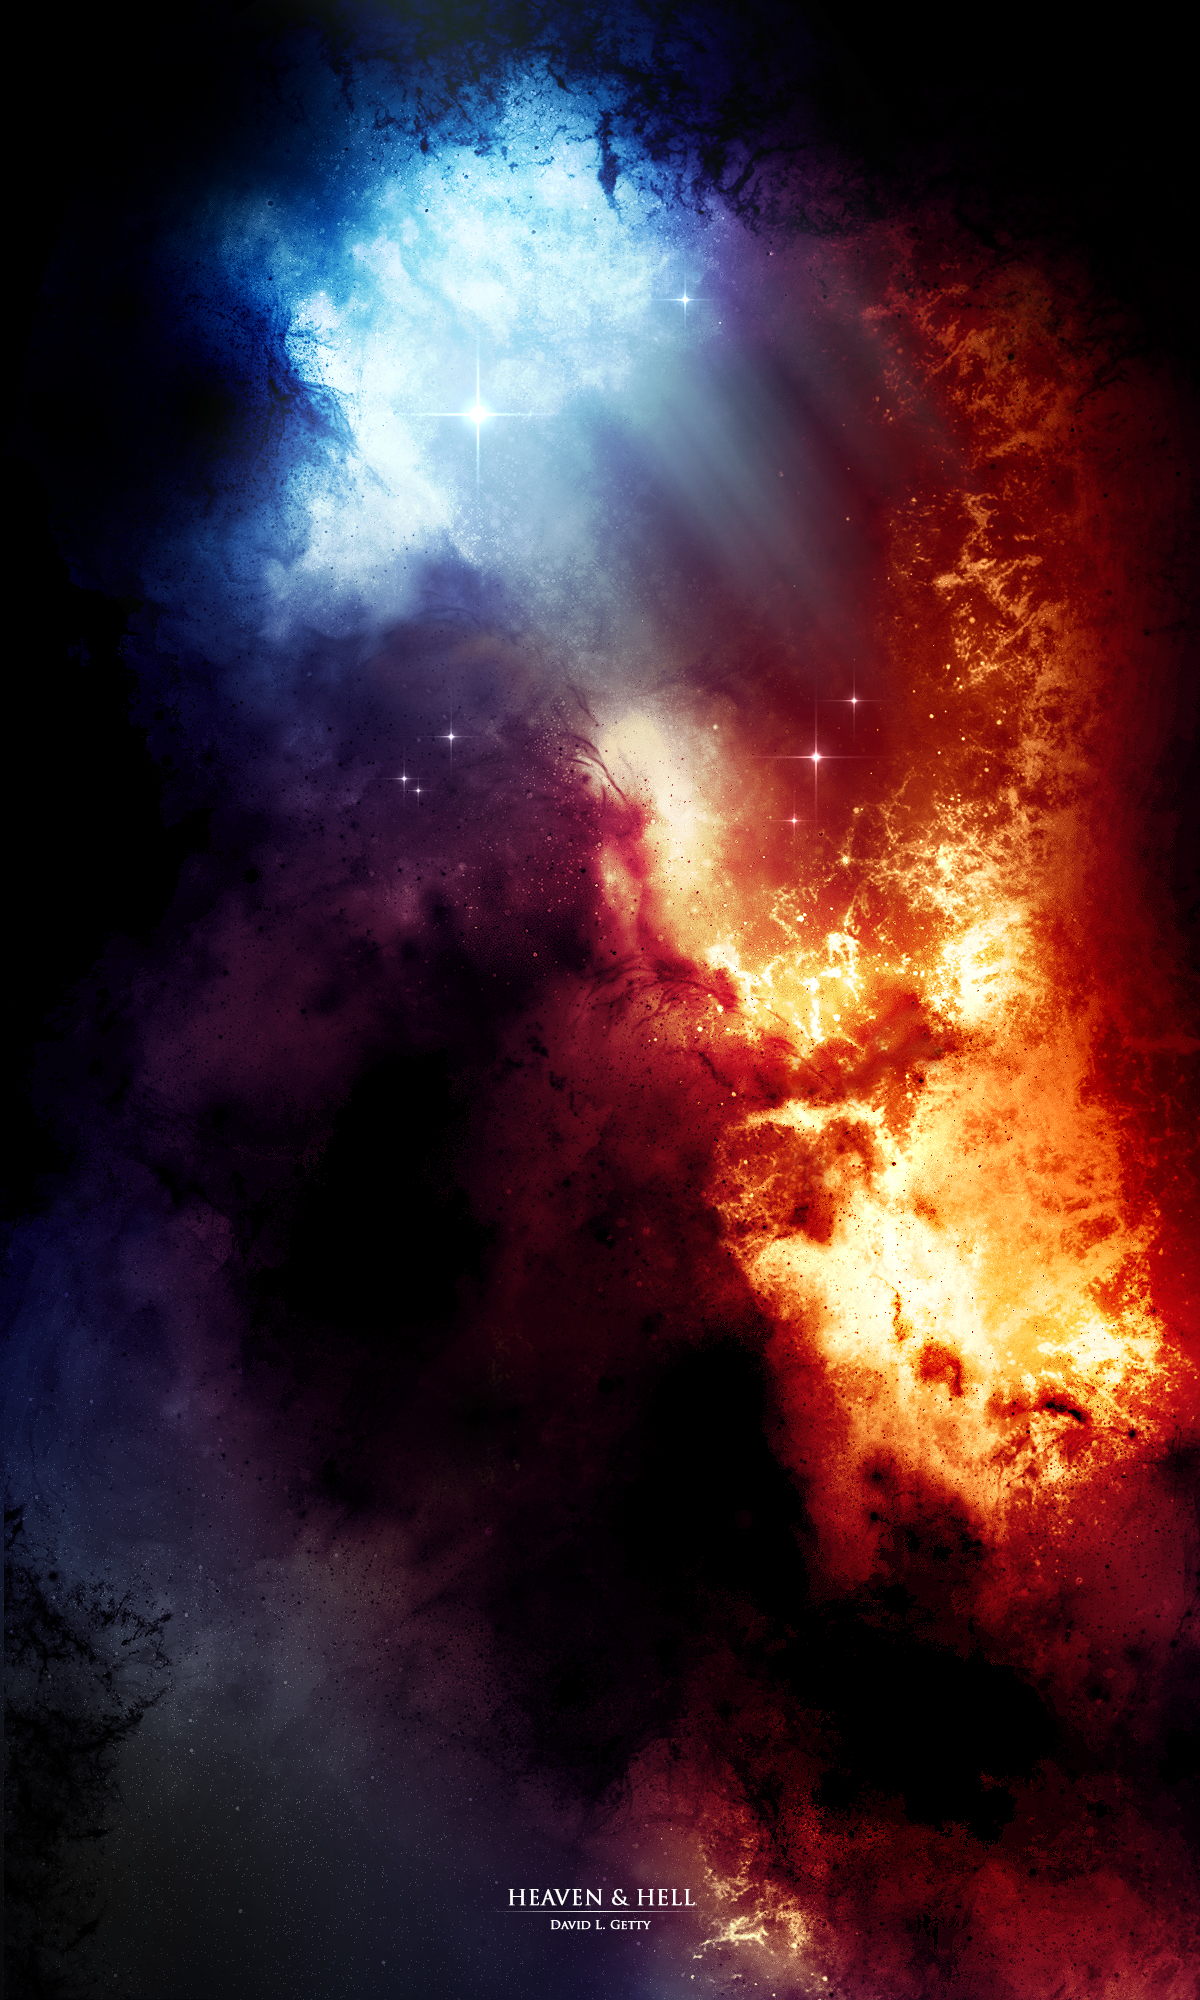 Heaven and hell by redxen on deviantart heaven and hell by redxen heaven and hell by redxen voltagebd Choice Image